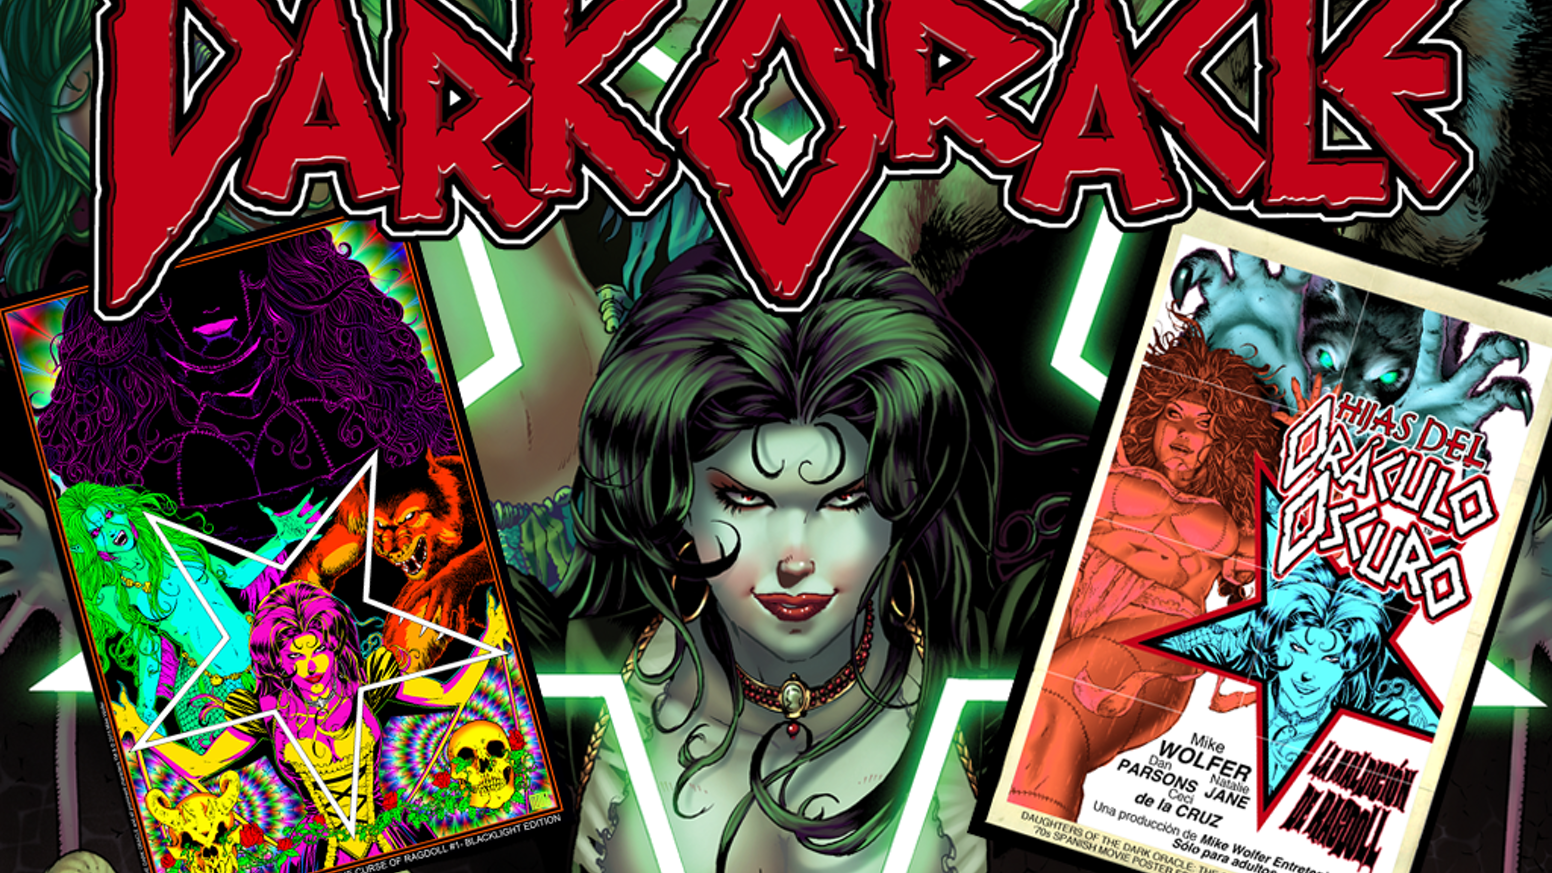 Blood will be spilled as Ragdoll, Countess Bathory and more are unleashed in the new comic series from Mike Wolfer Entertainment!